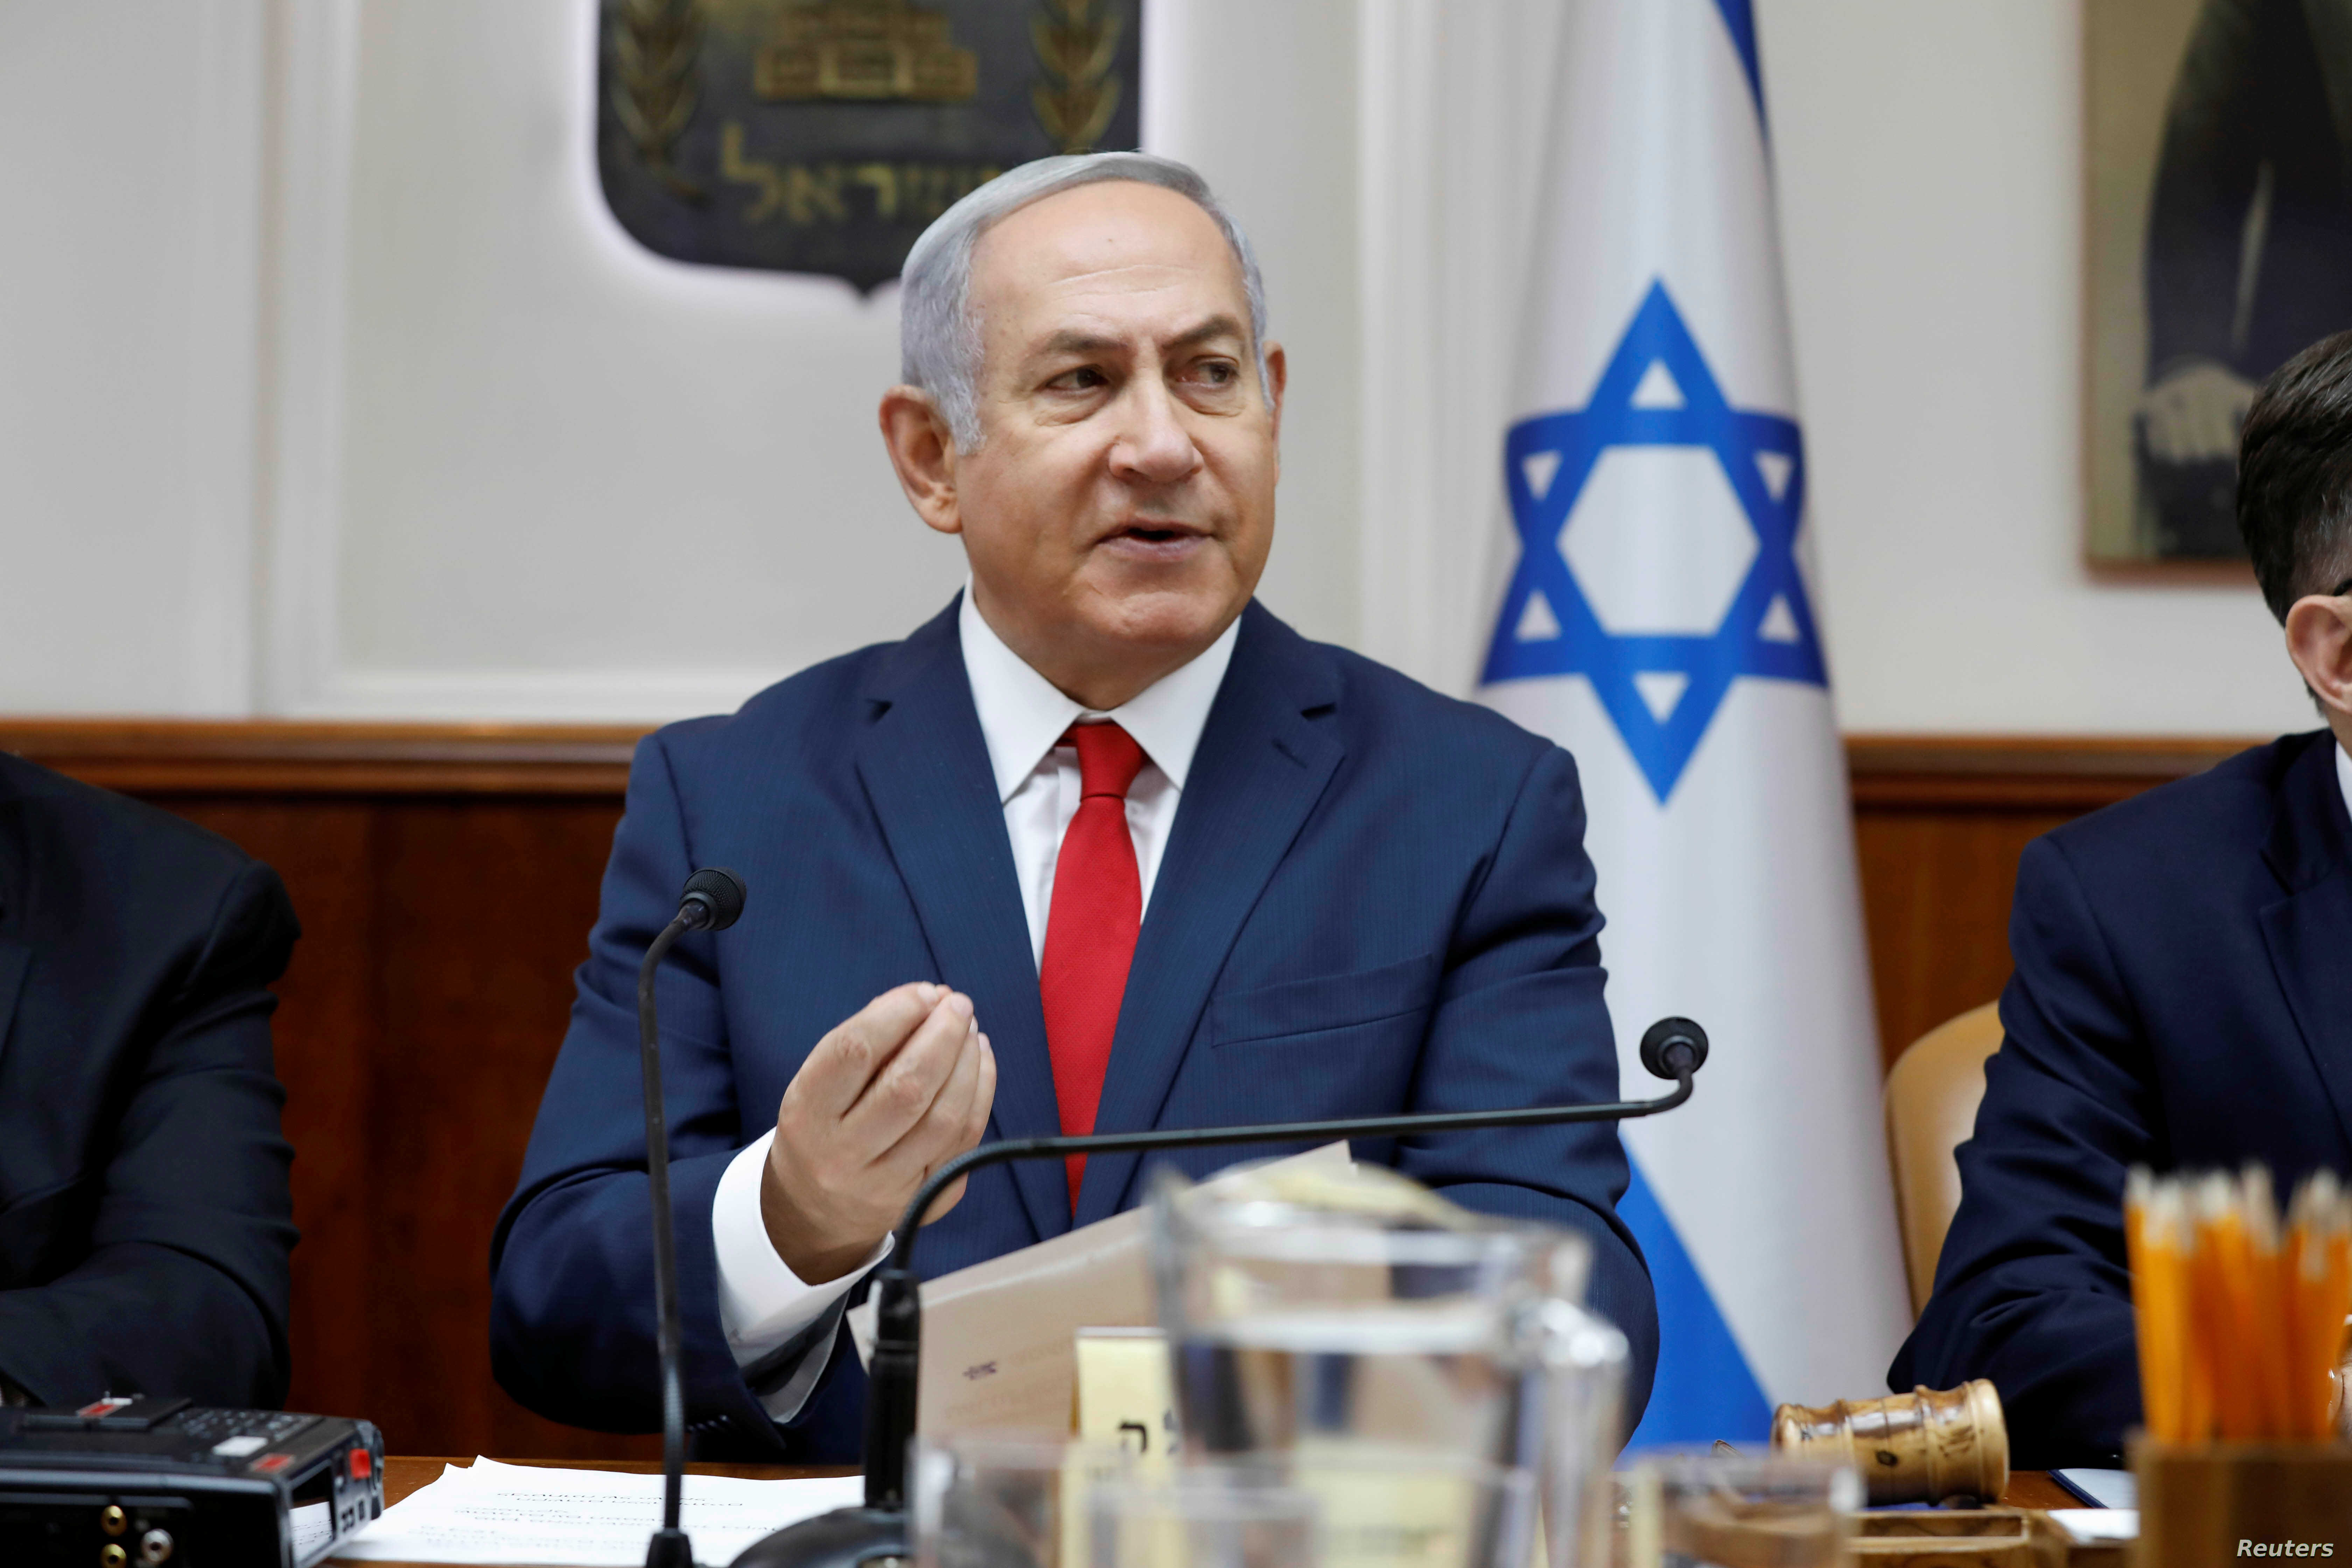 Israeli Prime Minister Benjamin Netanyahu attends the weekly cabinet meeting at his office in Jerusalem, July 8, 2018.